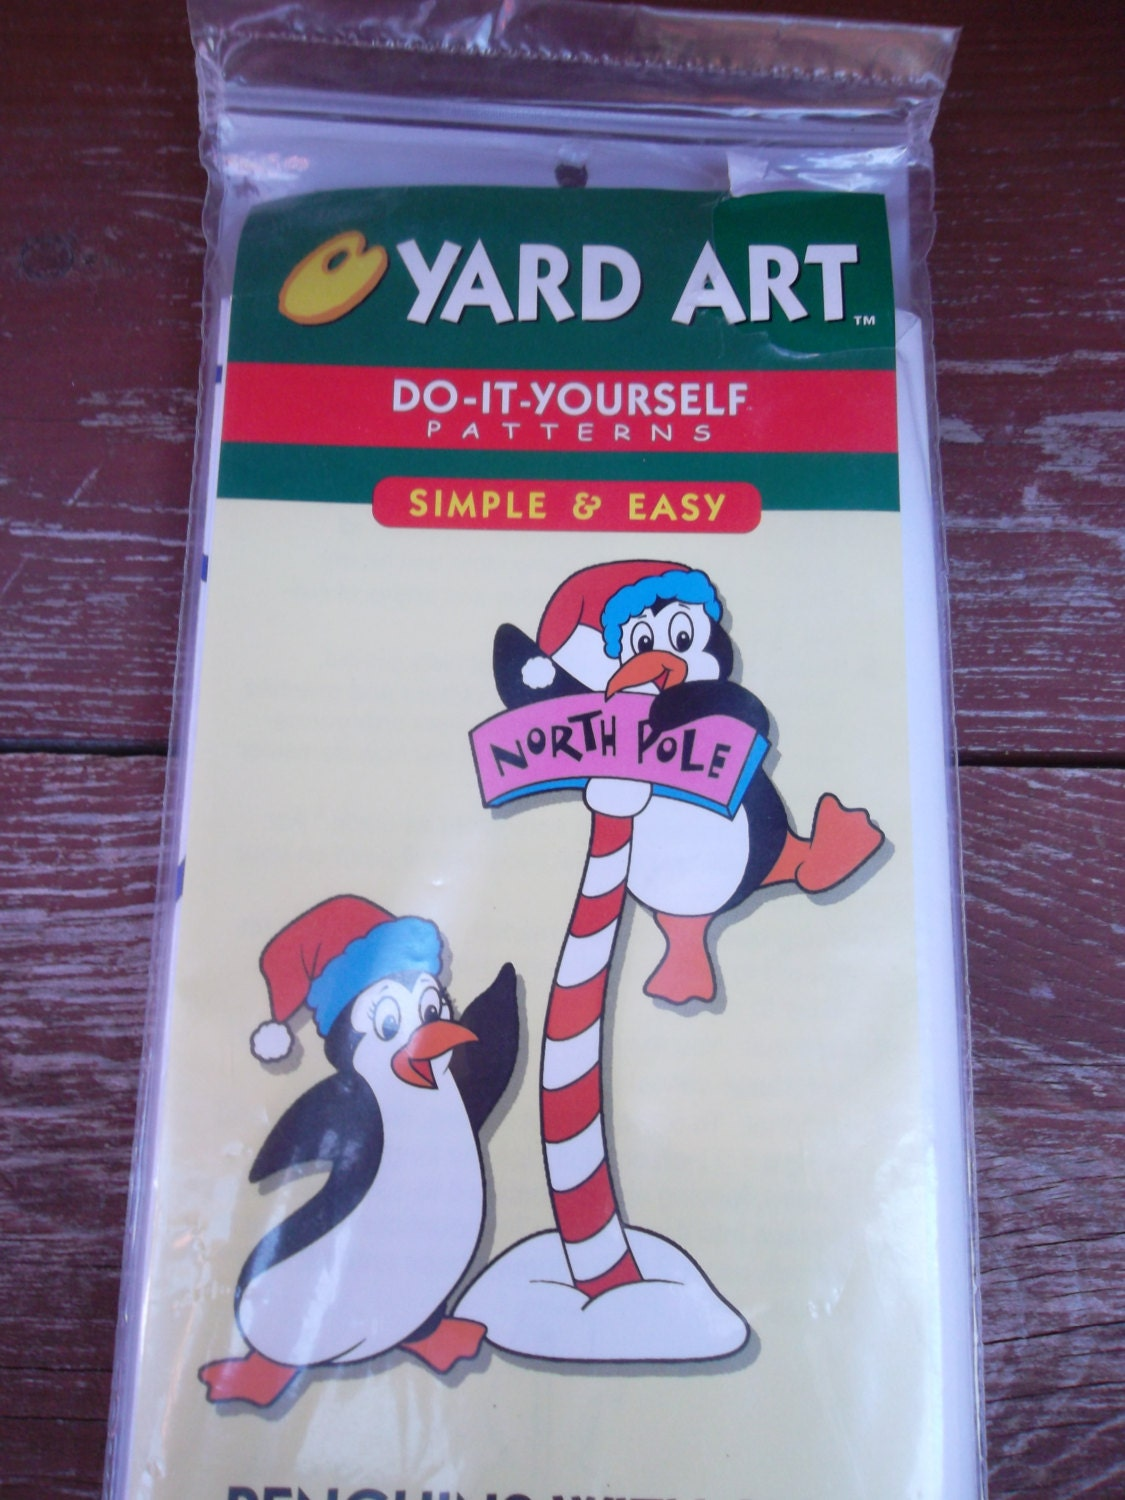 Yard art do it yourself patterns penguins with sign outdoor yard 695 solutioingenieria Choice Image